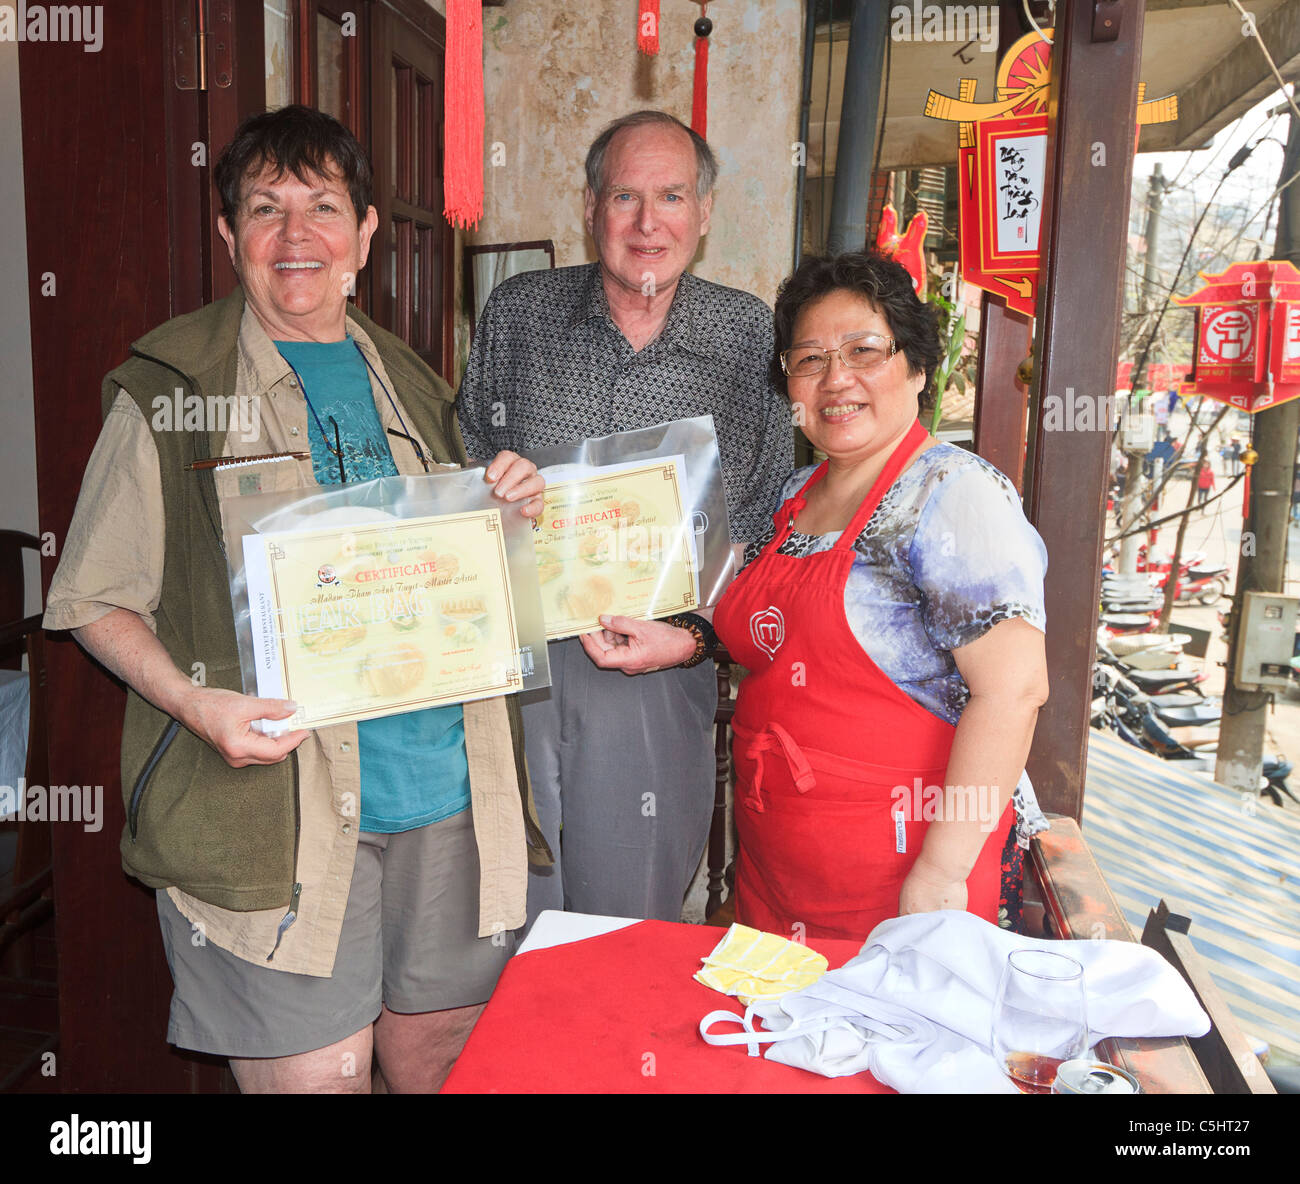 Man and woman  'graduate' from cooking class at Cafe Anh Tuyet in Hanoi, Vietnam, taught by celebrity chef - Stock Image